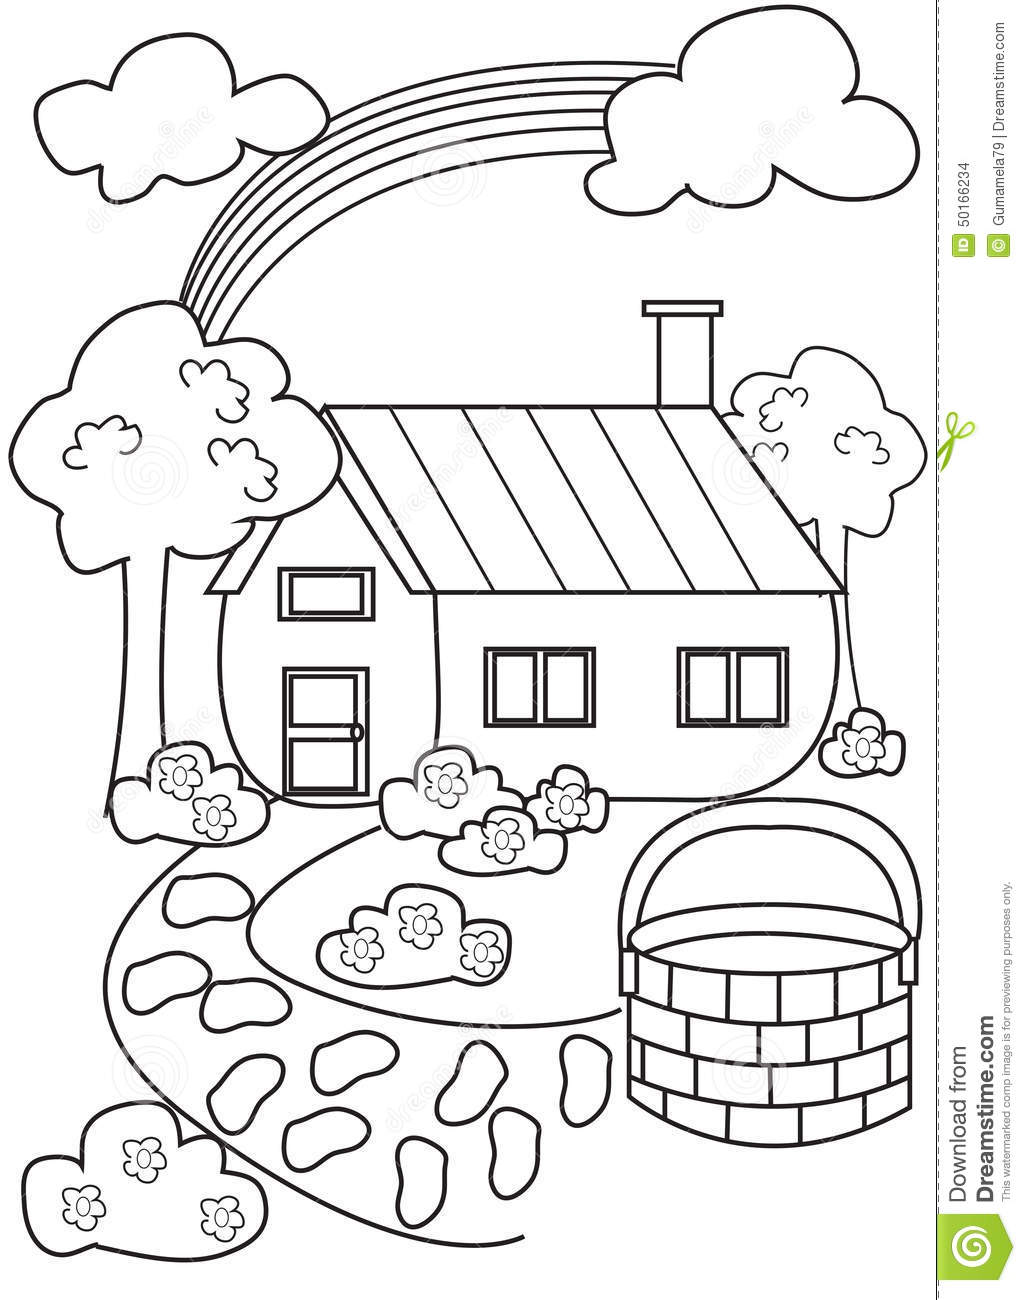 1026x1300 Coloring Kids School House Pages Full Image For Open Online